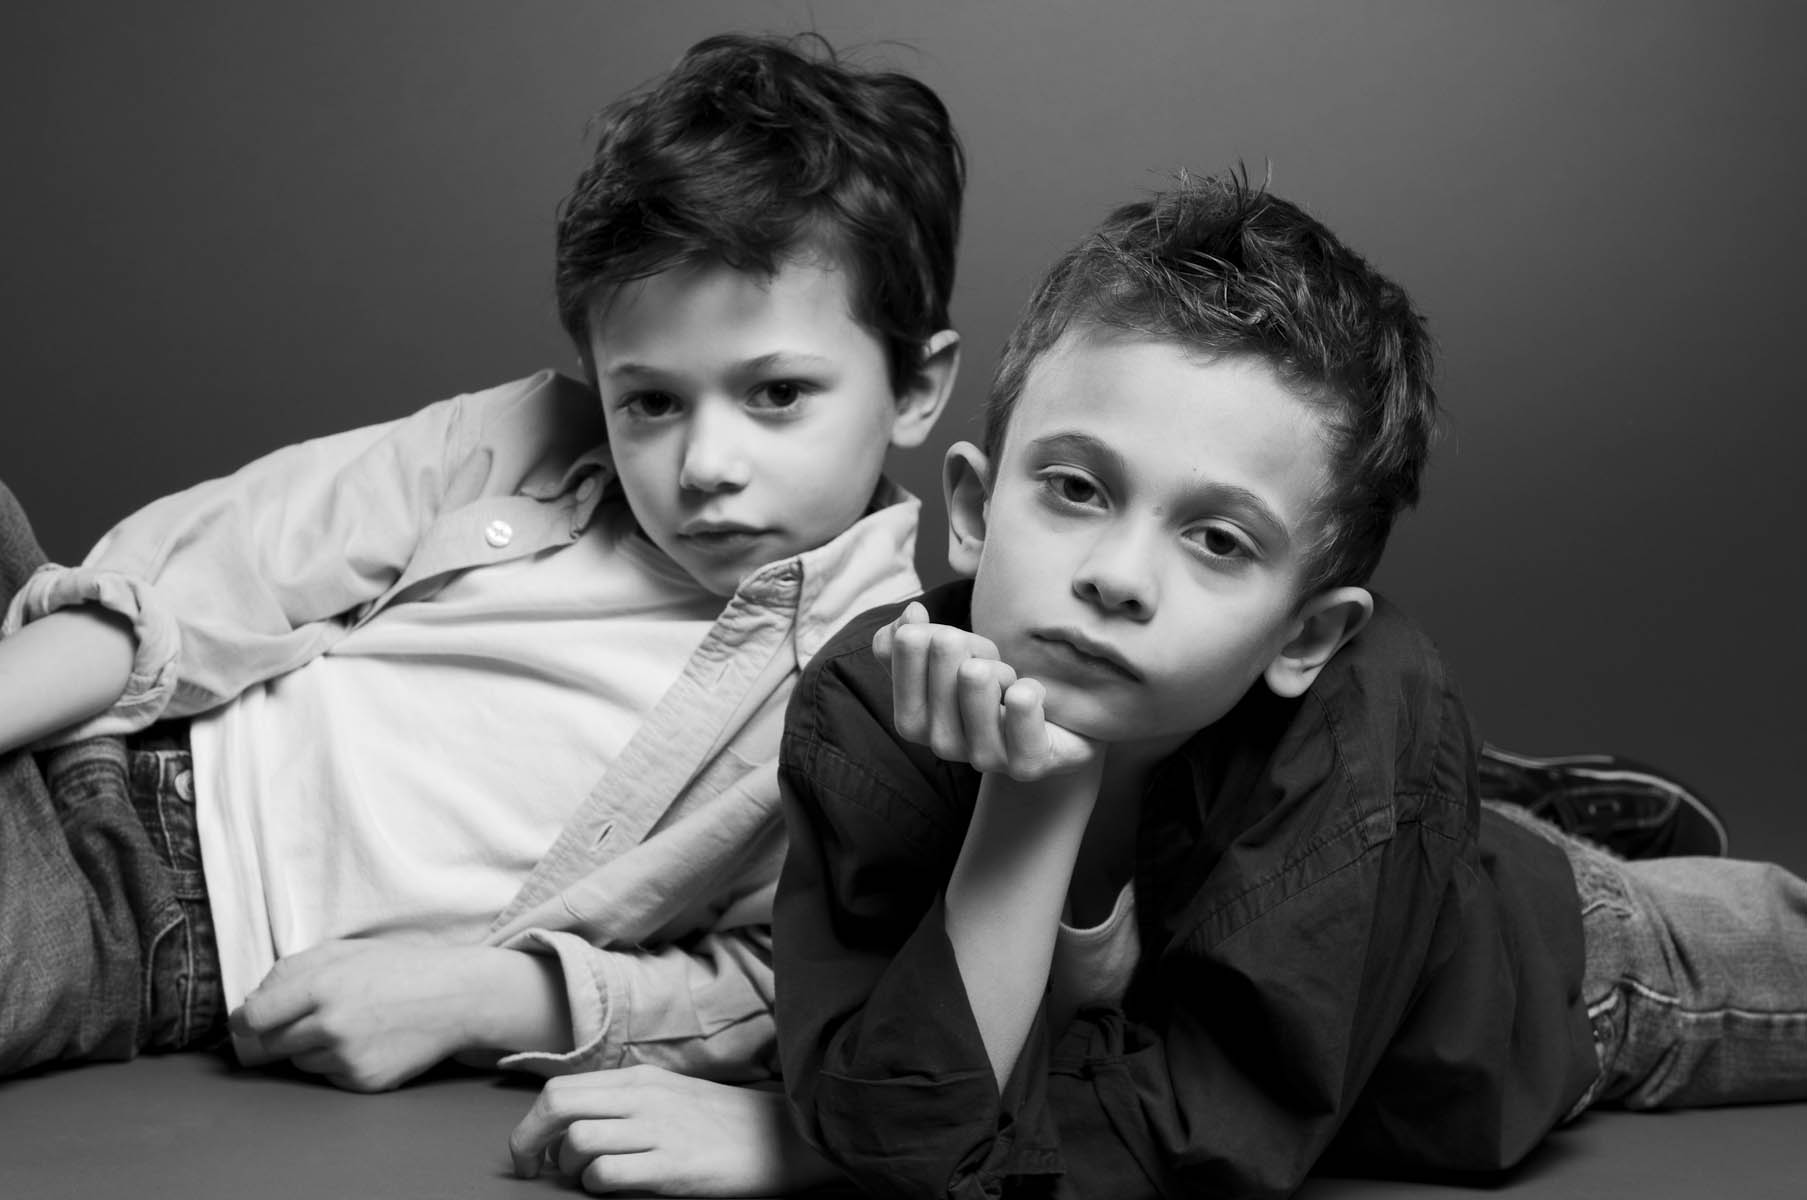 photographe d'enfant en studio